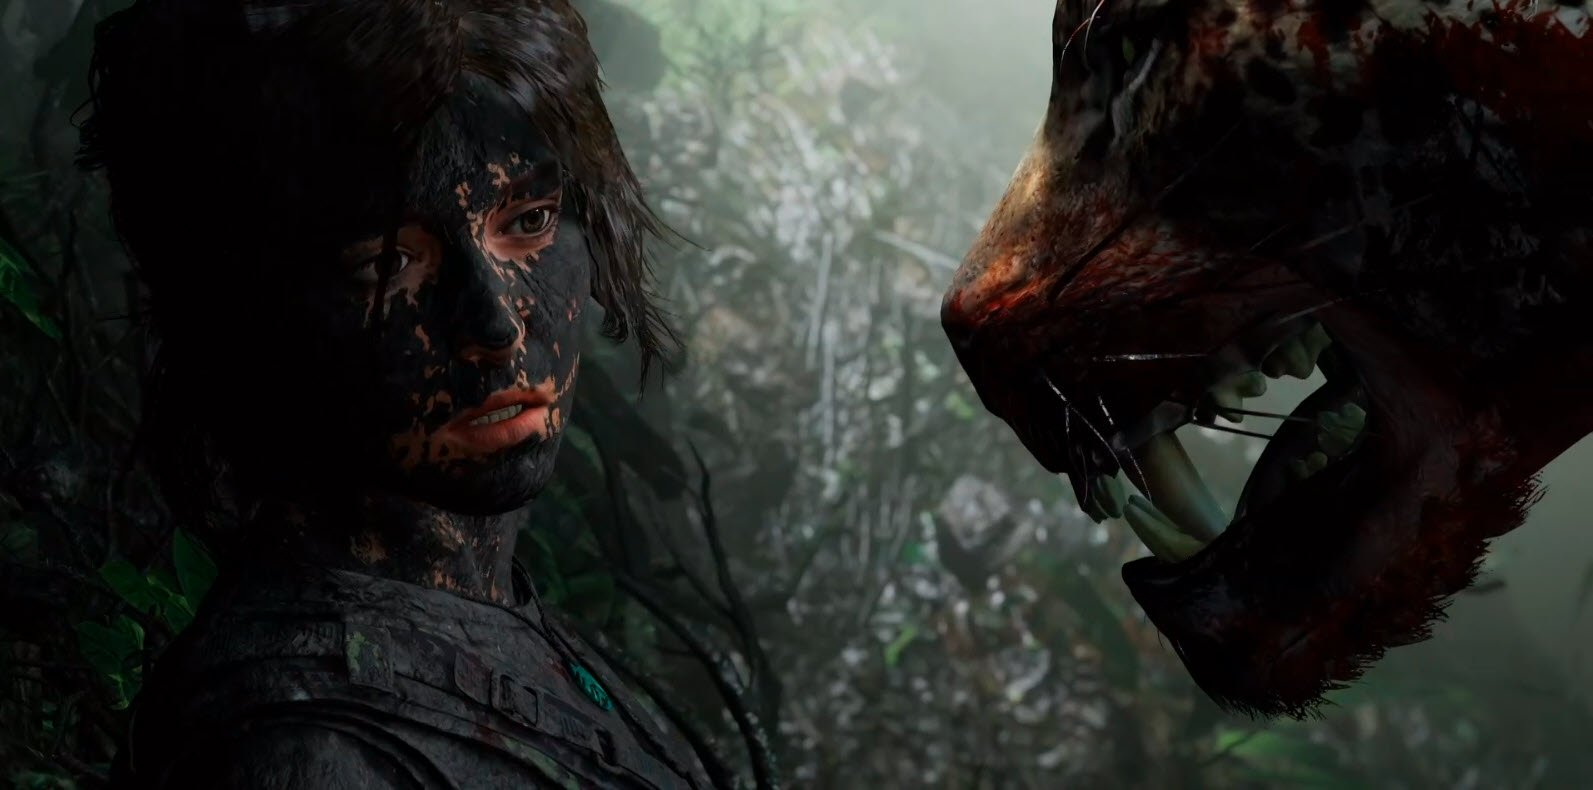 Shadow Of The Tomb Raider Looks To End The Trilogy On A High Note